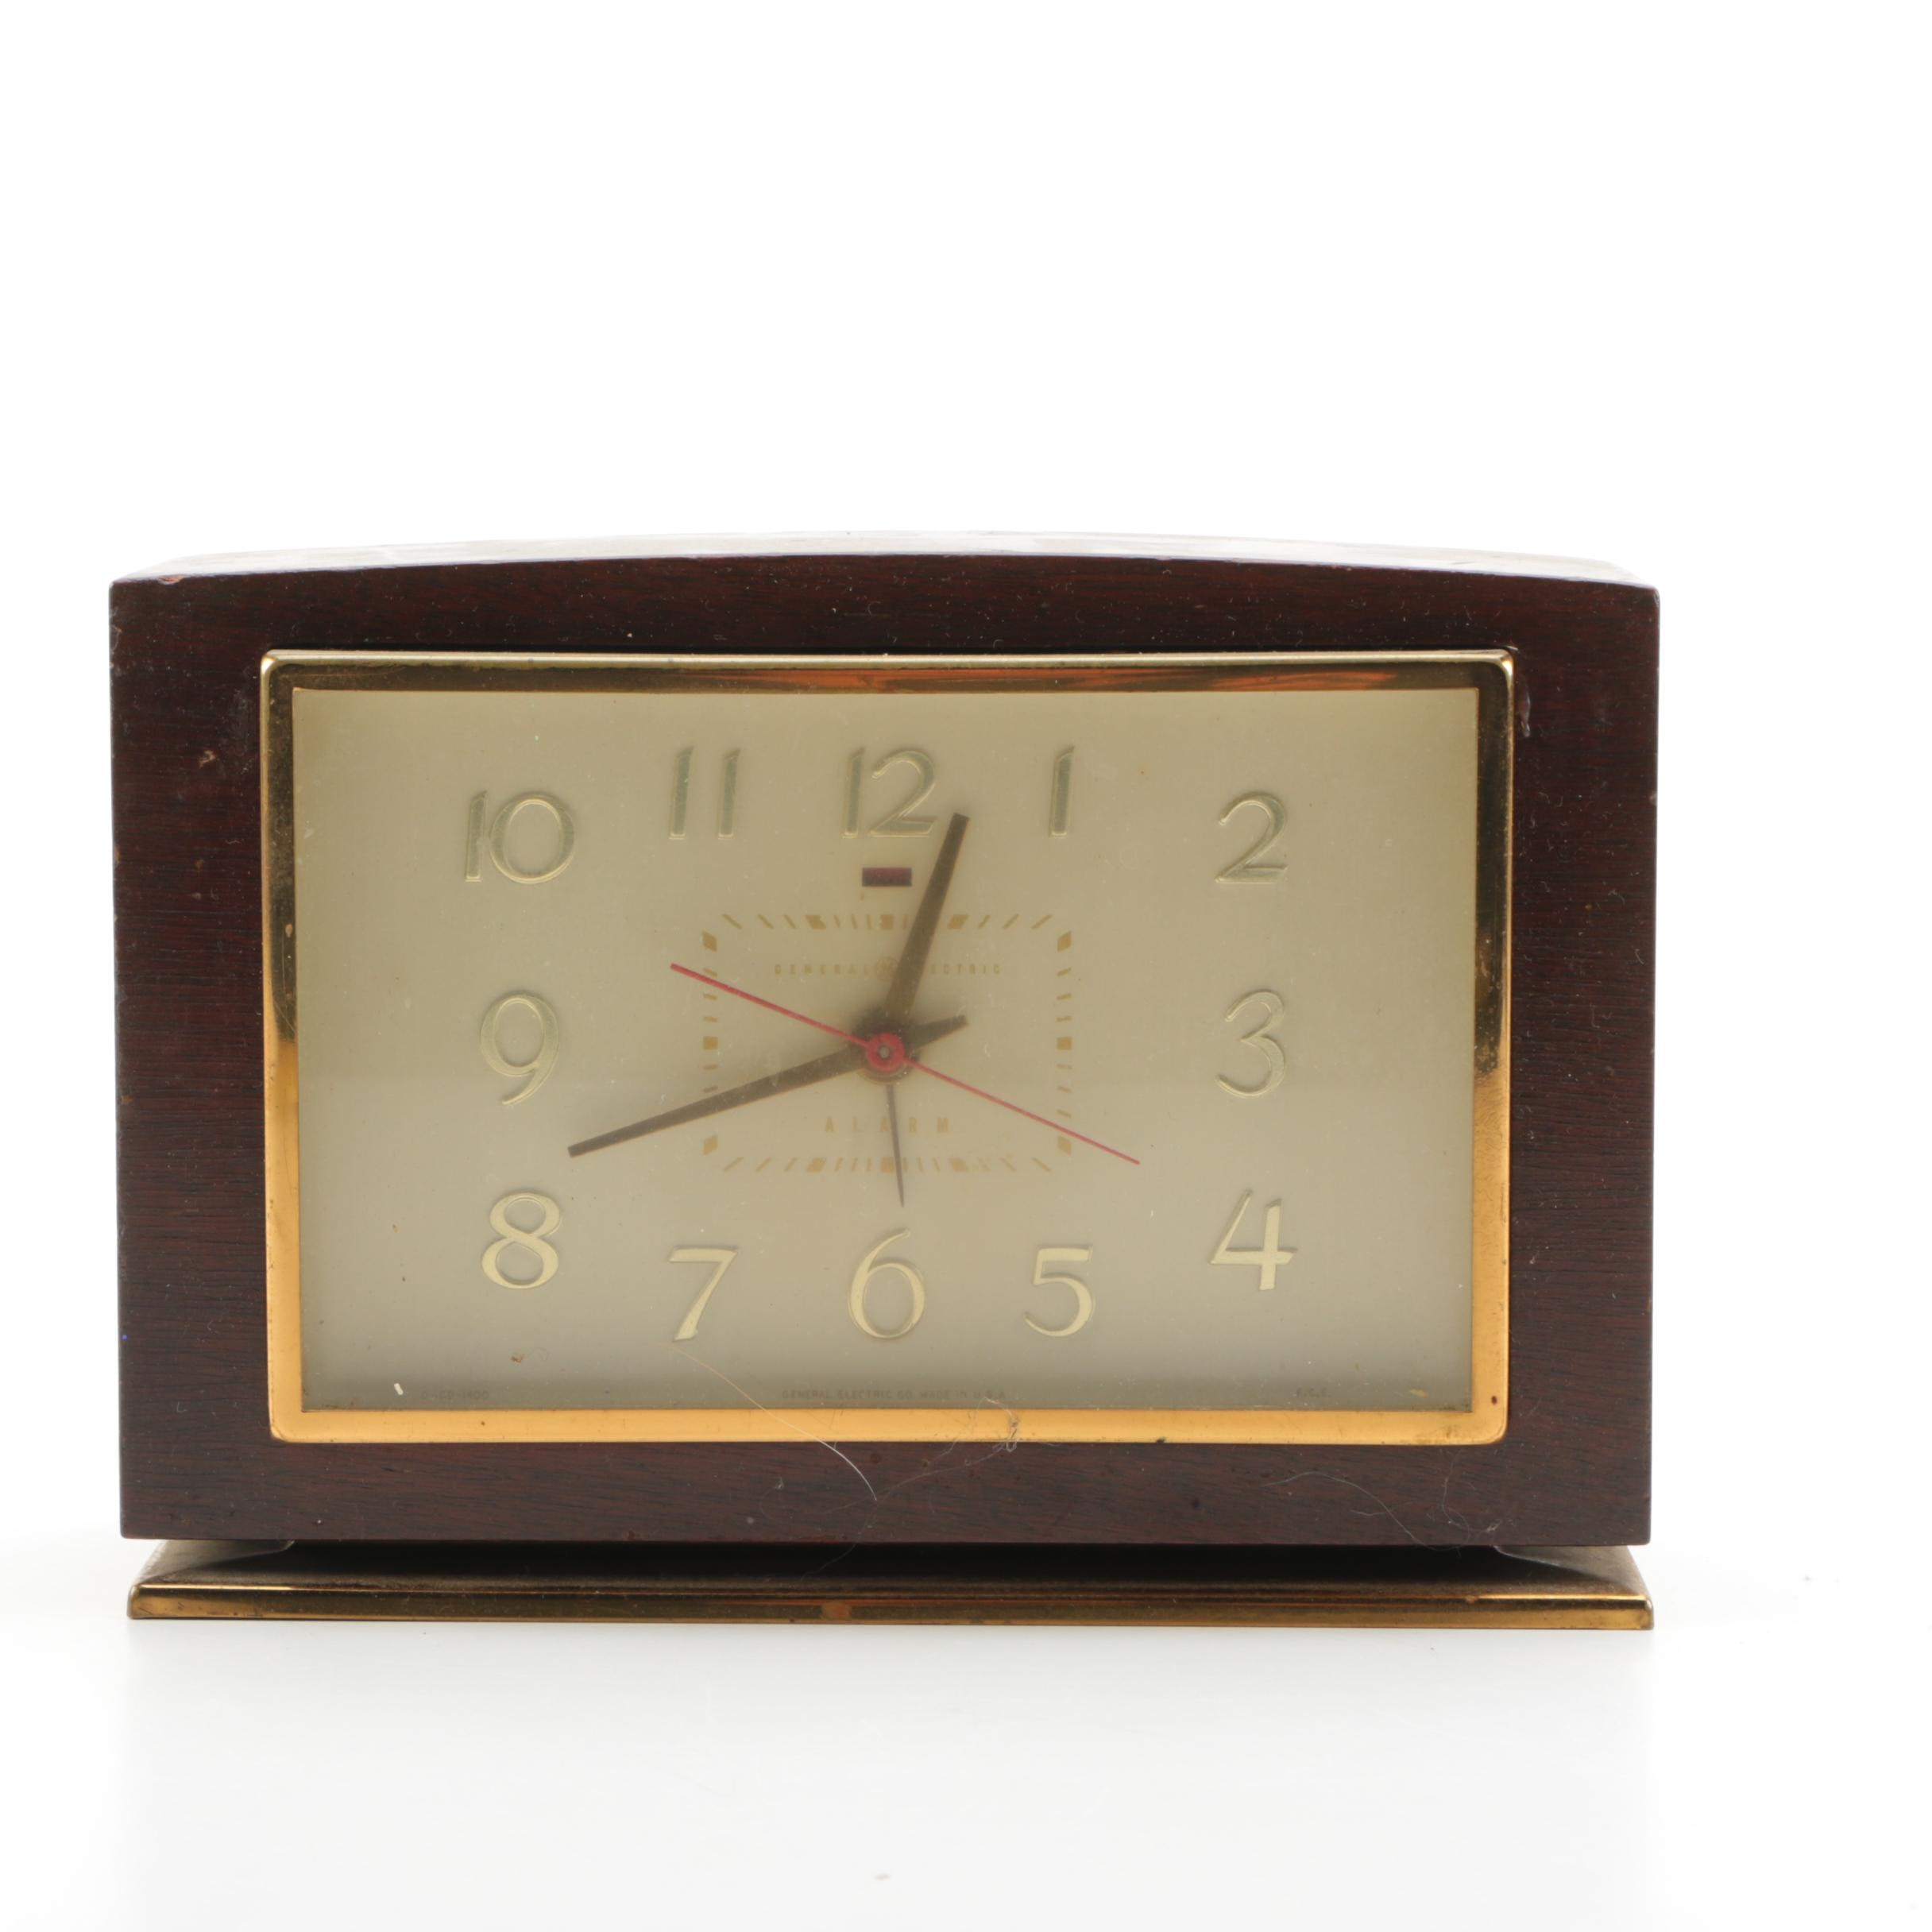 general electric vintage alarm clock